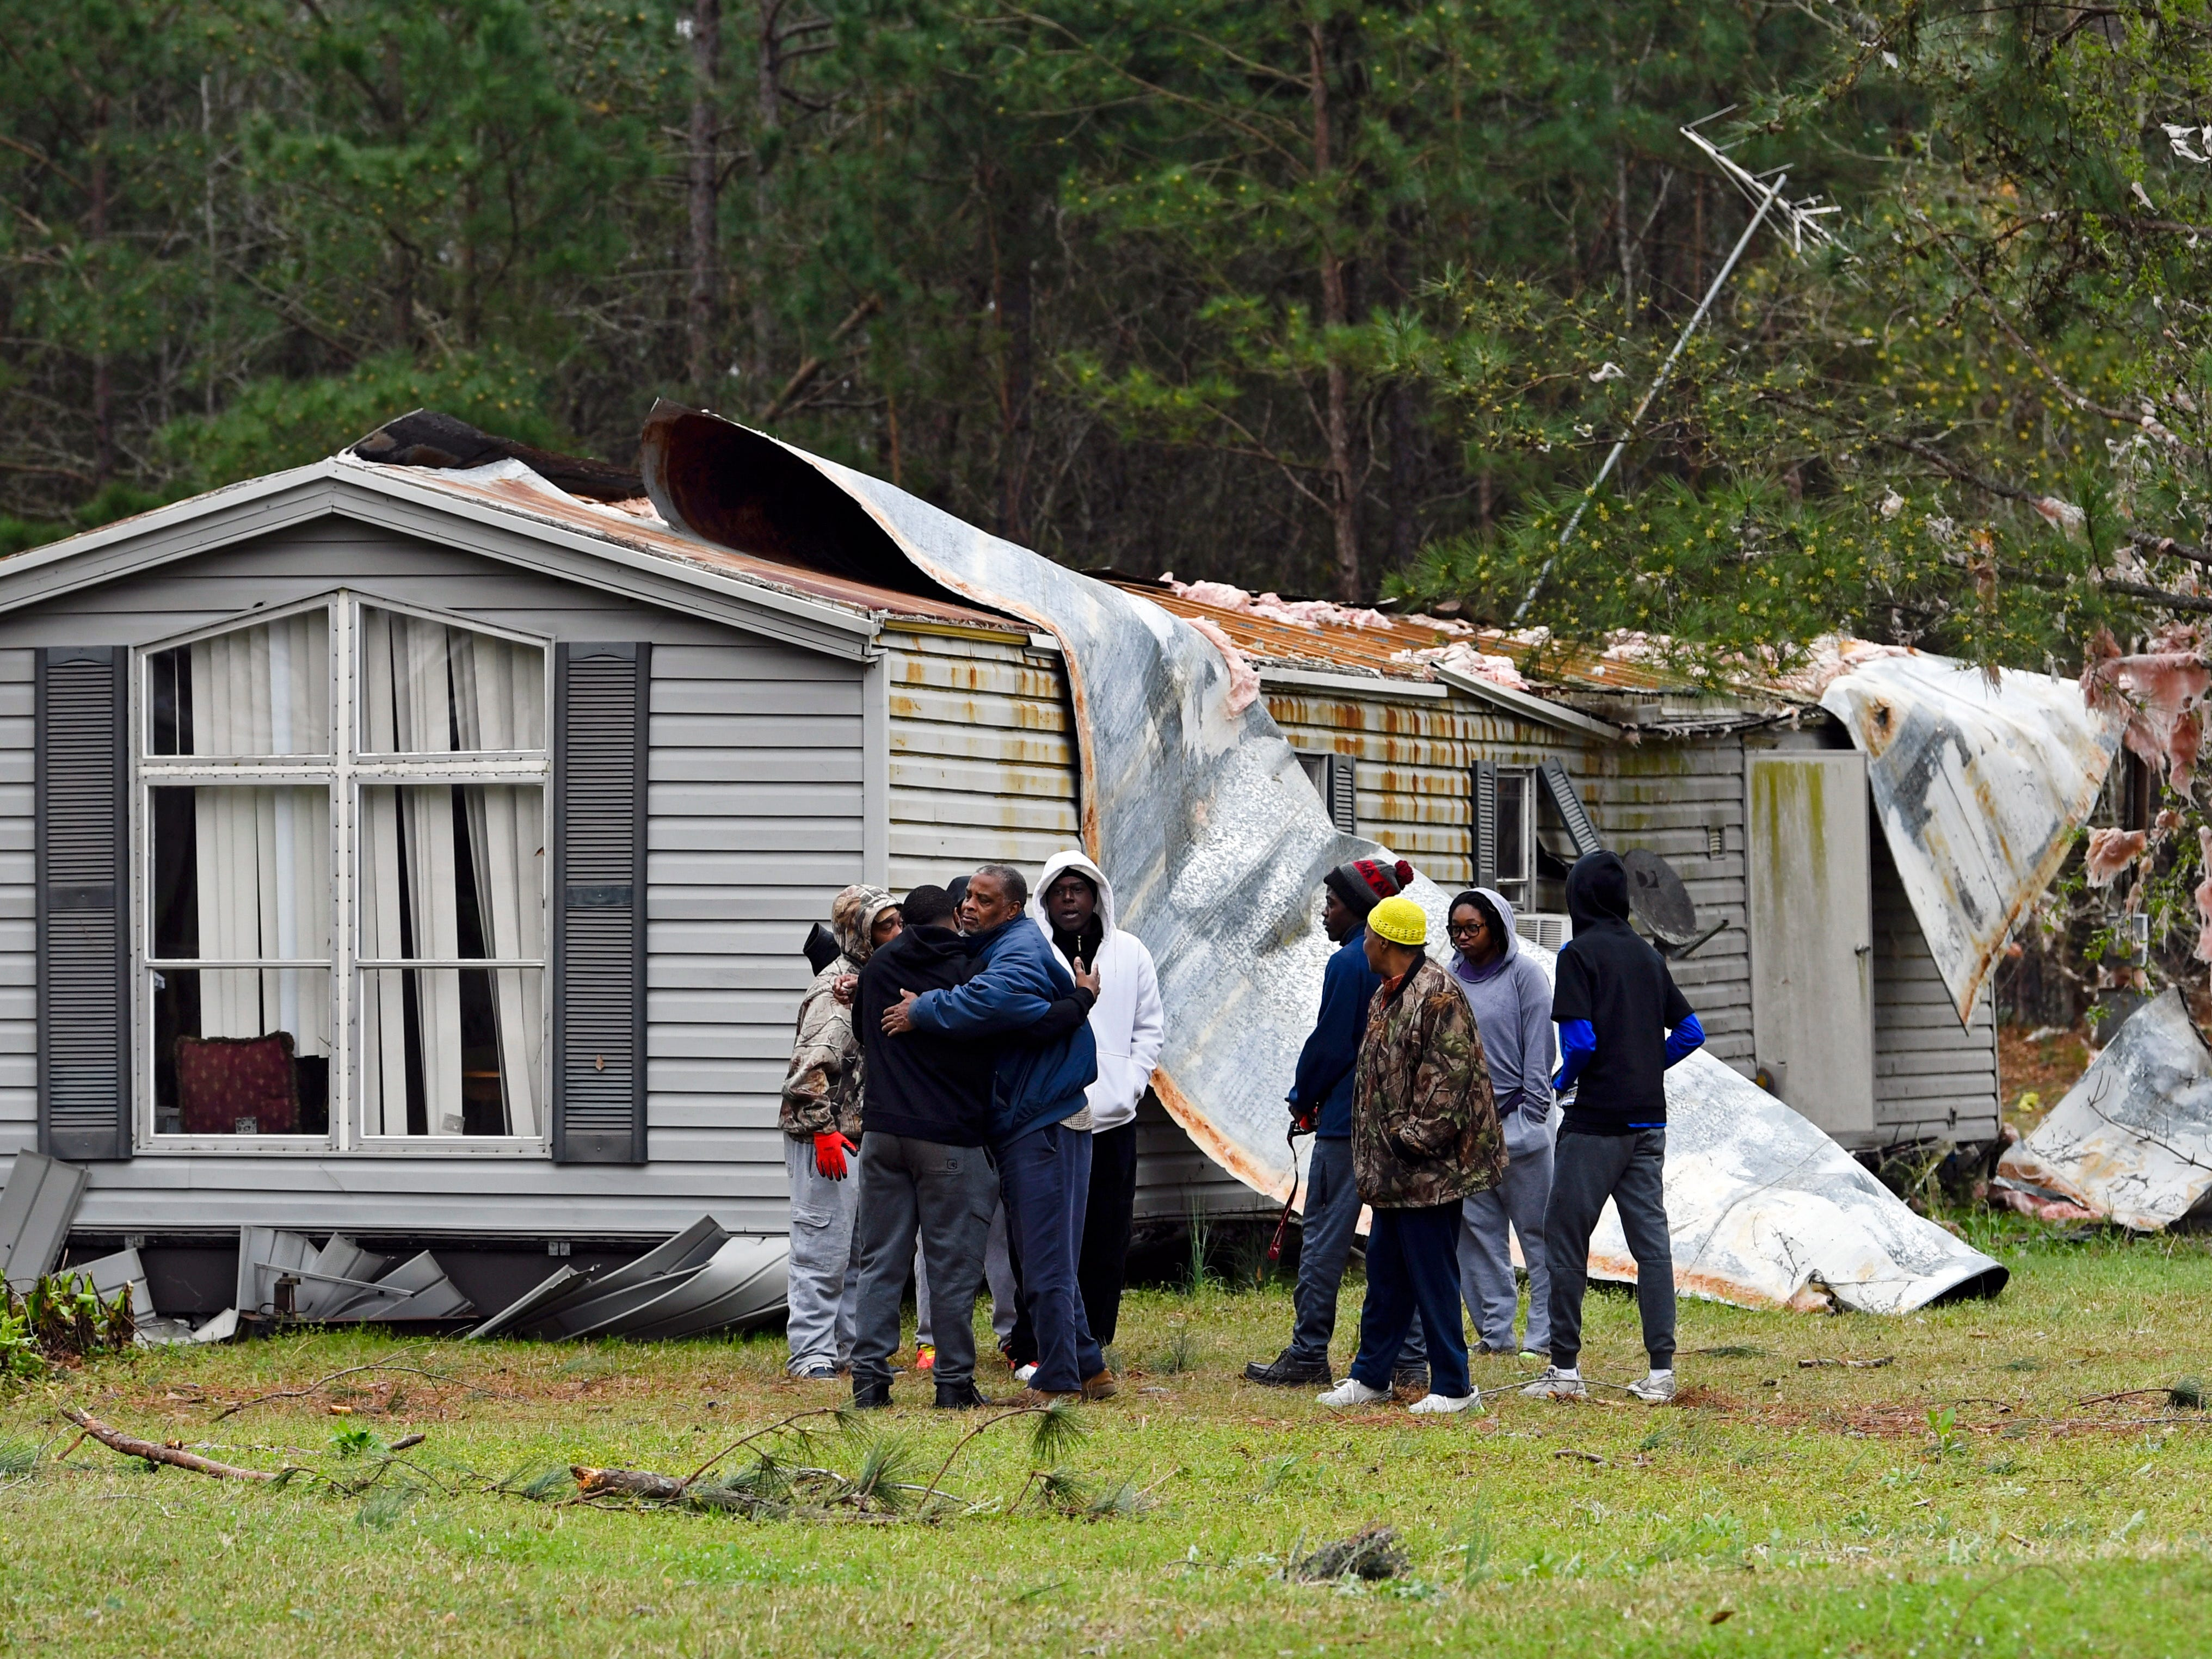 Family members console each other after a tornado damaged a home the previous day in Beauregard, Ala., March 4, 2019.   At least 23 people are confirmed dead following Sunday's tornado outbreak with violent storms that left debris strewn across southern Alabama and Georgia.